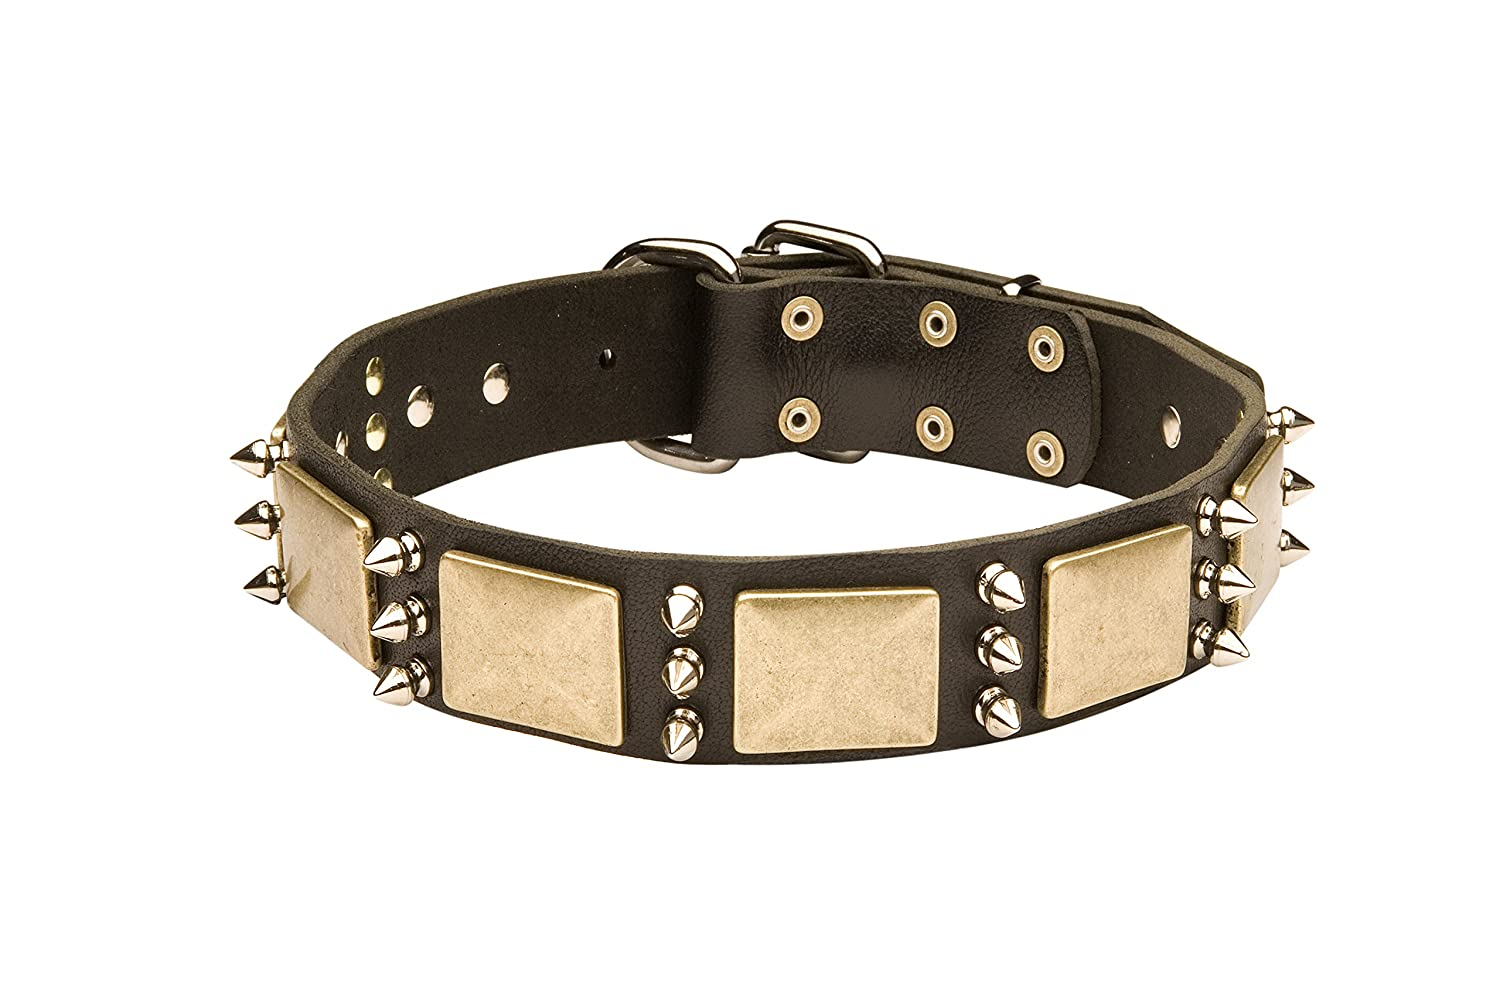 Black fits for 26 inch dog's neck size Black fits for 26 inch dog's neck size 26 inch Gorgeous War Dog Black Leather Dog Collar with Spikes and Plates  Noble Sir  1 1 2 inch (40 mm) wide